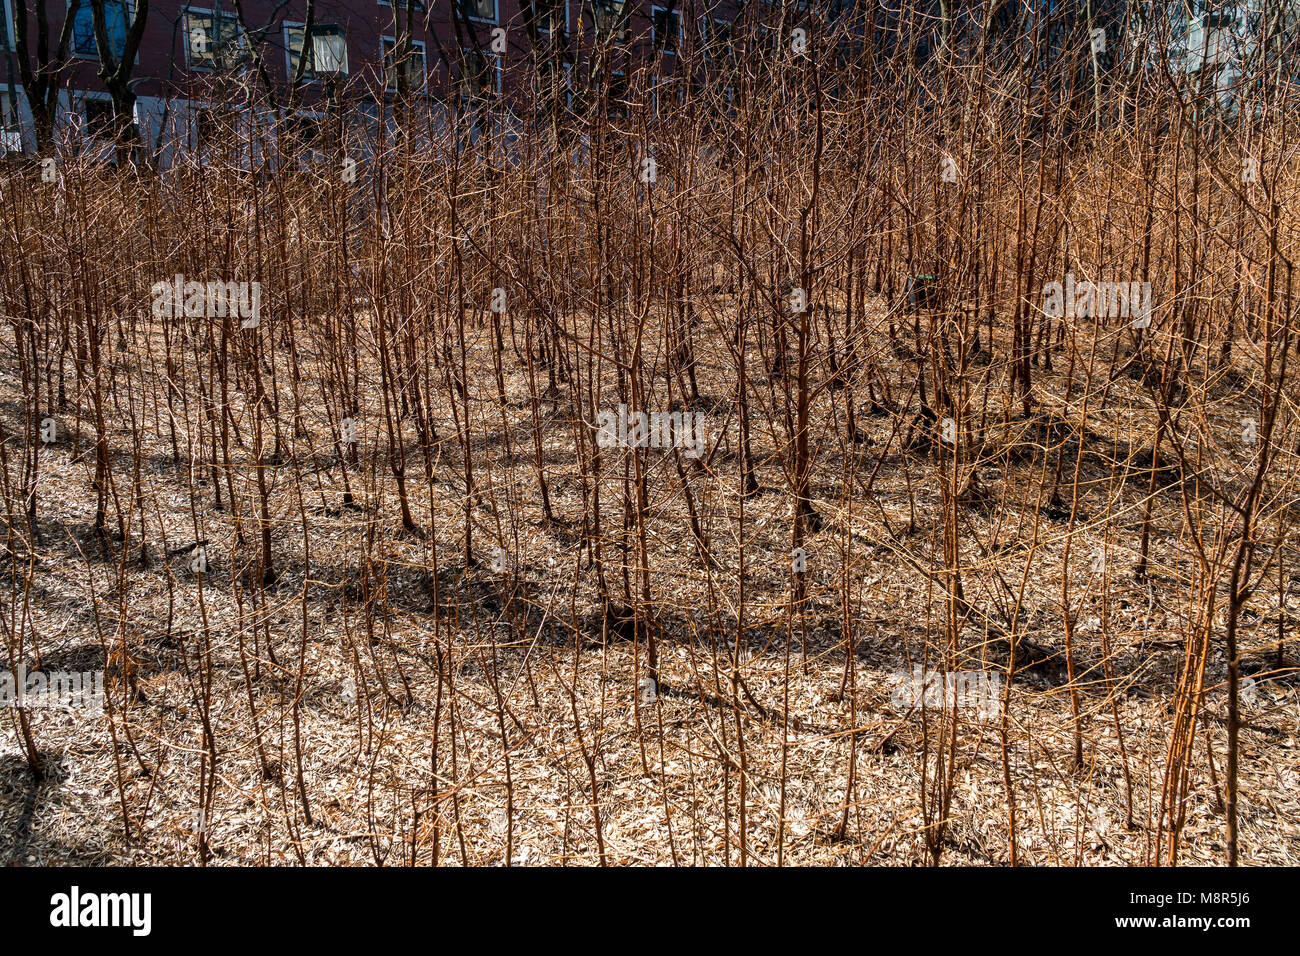 'Lost Man Creek' by the artist Spencer Finch at the Metrotech Center in Brooklyn in New York on closing - Stock Image